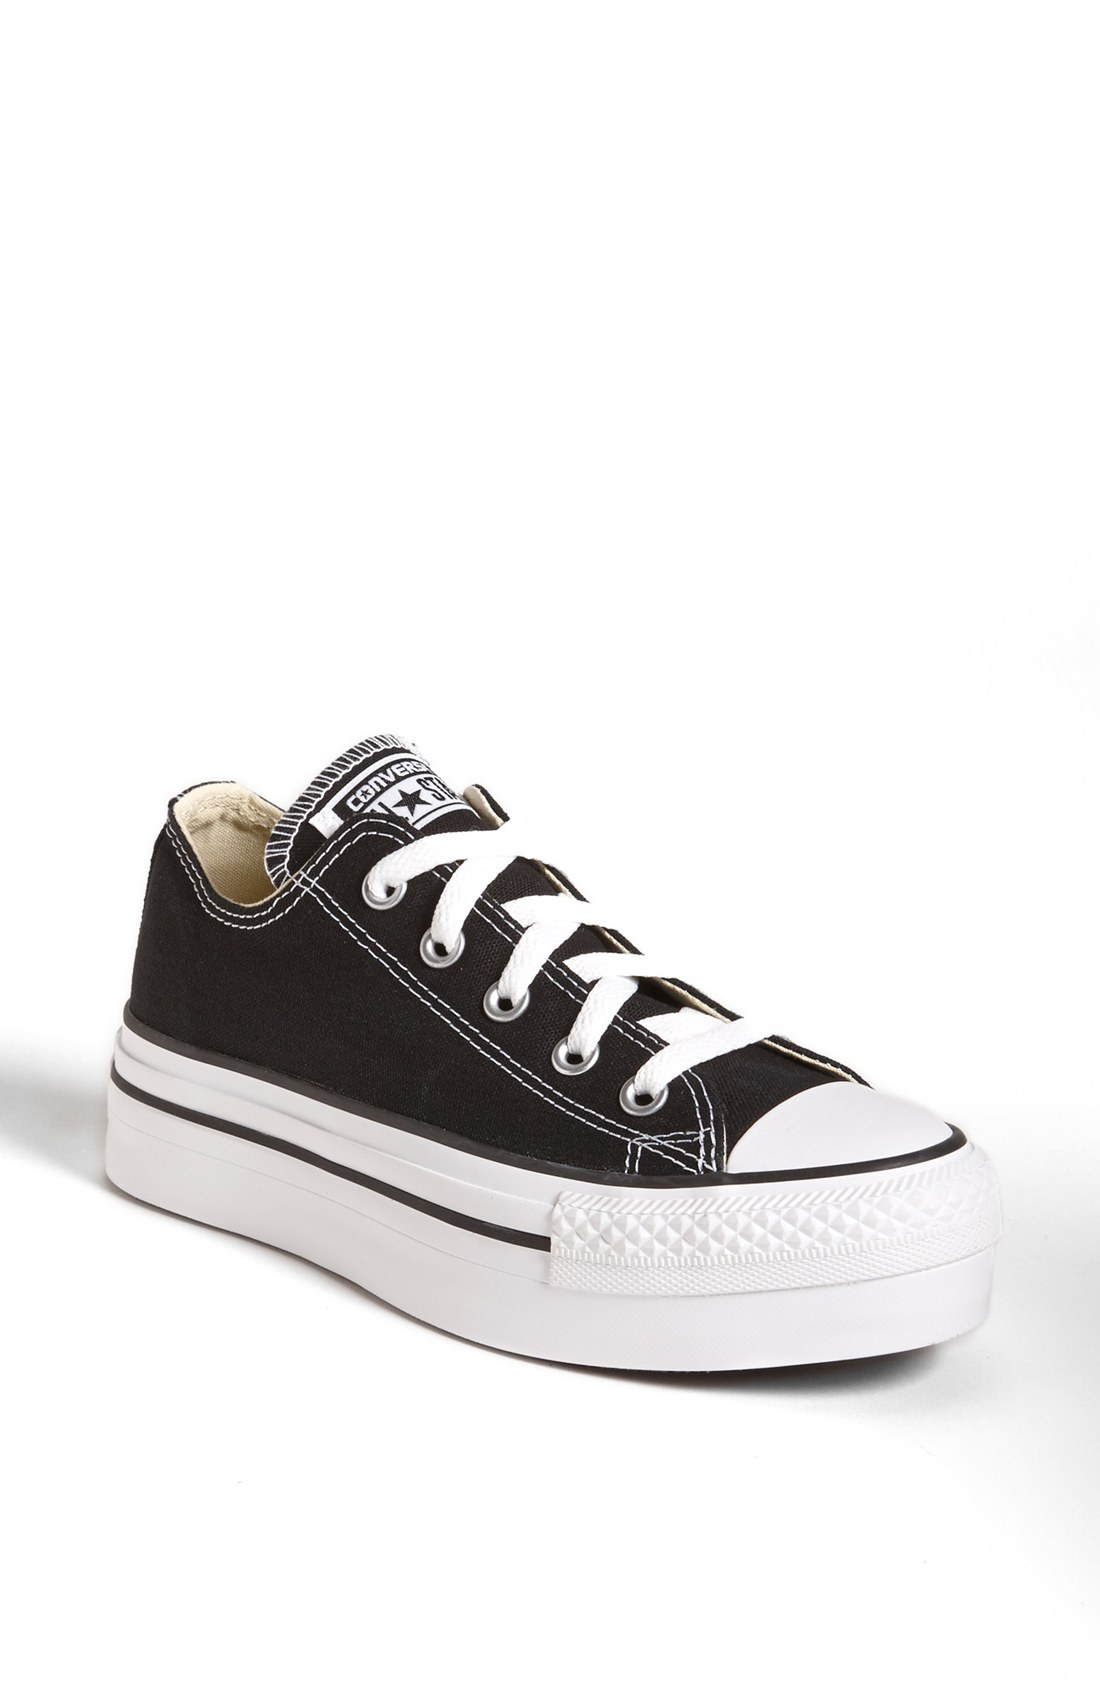 converse all star platform ox